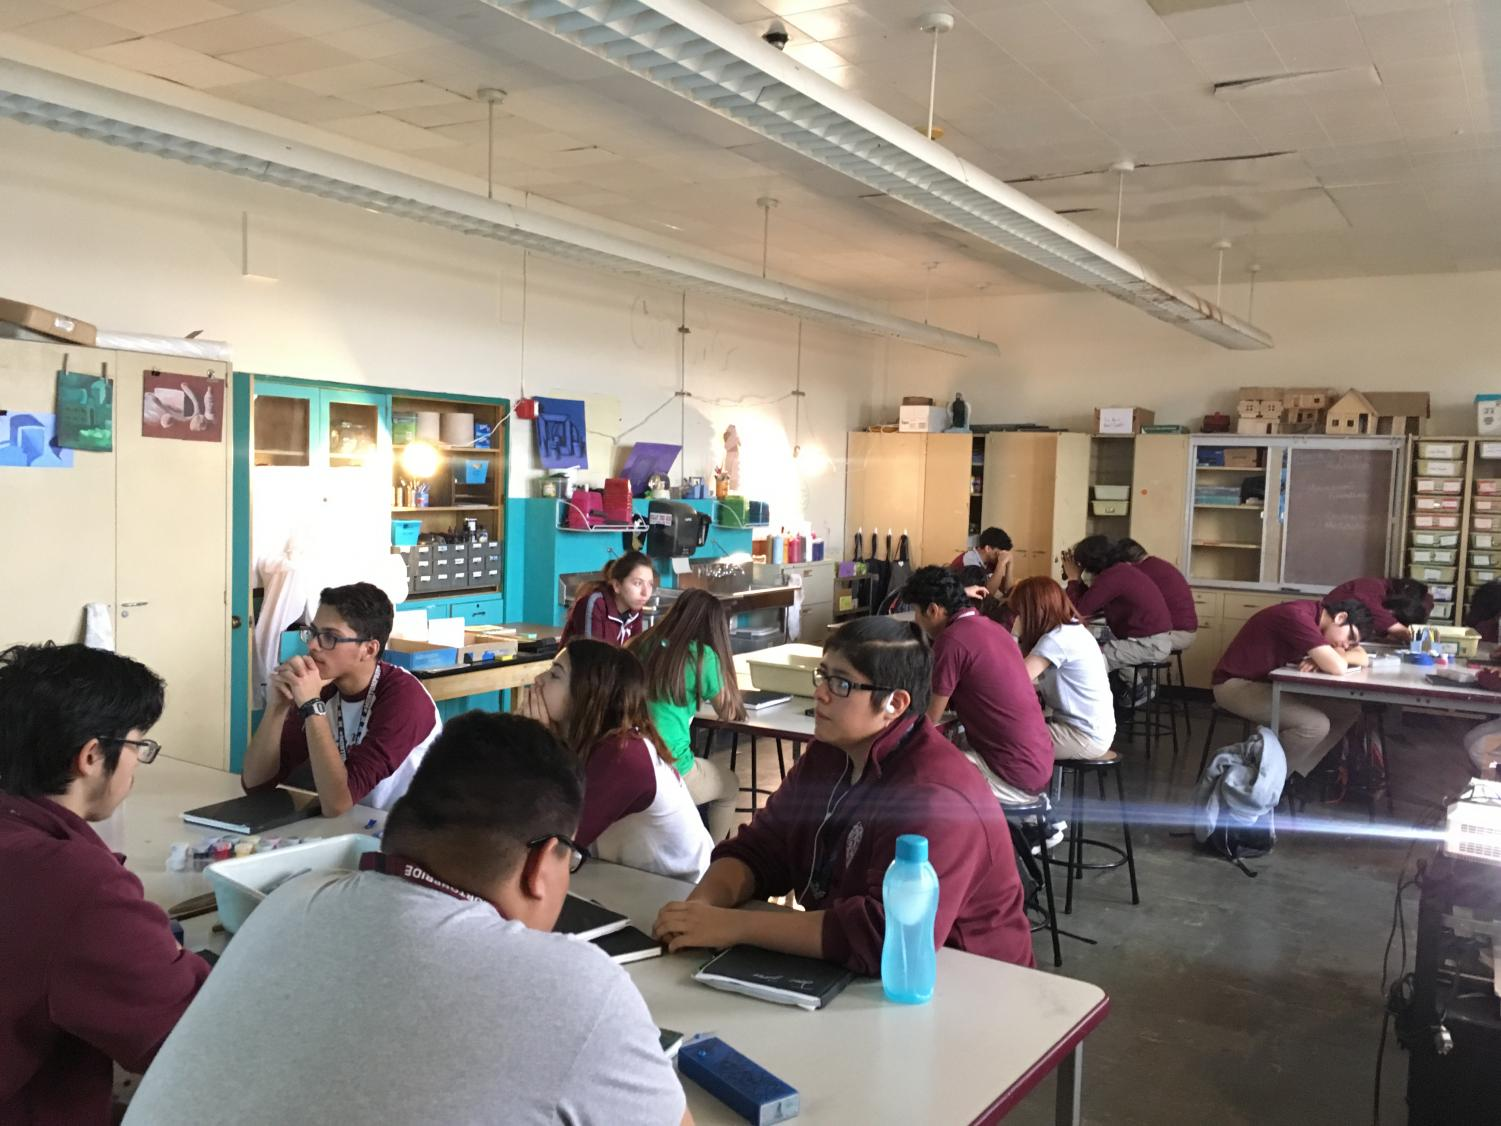 A class of students meditating to release stress and calm their minds.